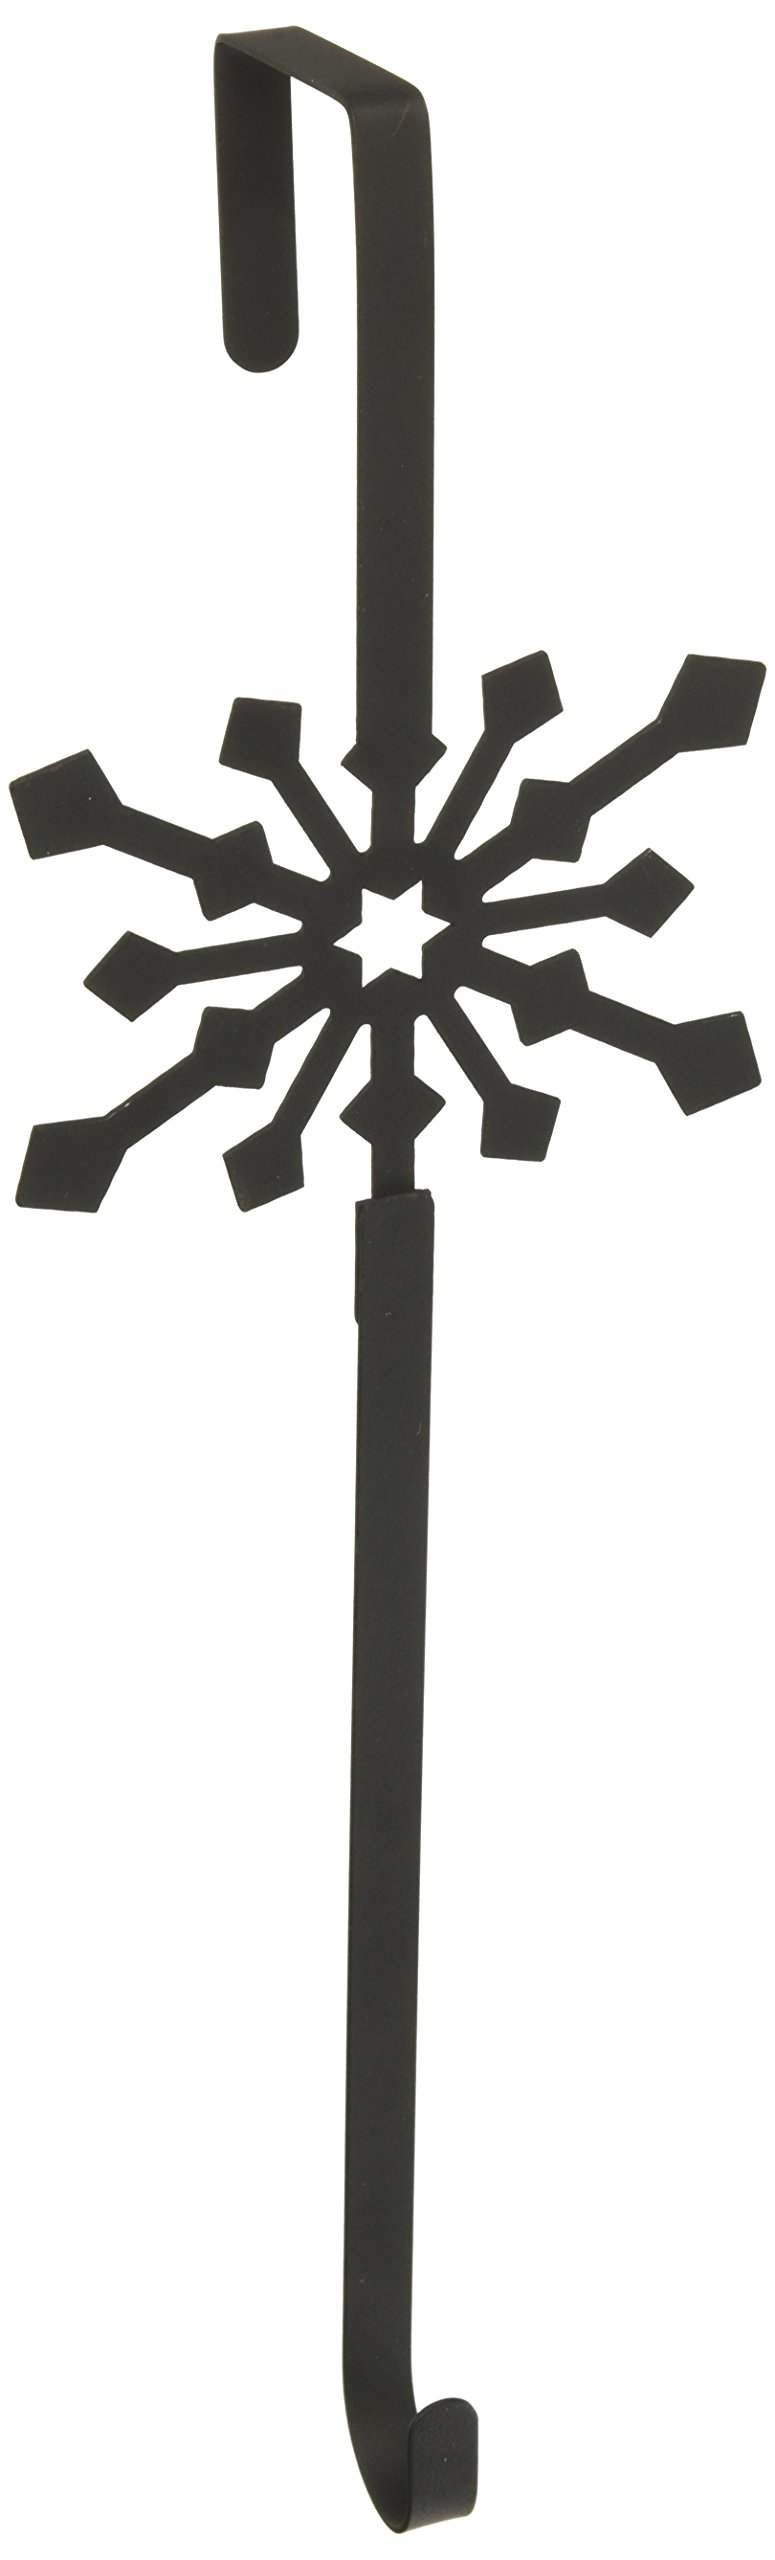 Village Wrought Iron 13 Inch Snowflake Wreath Hanger